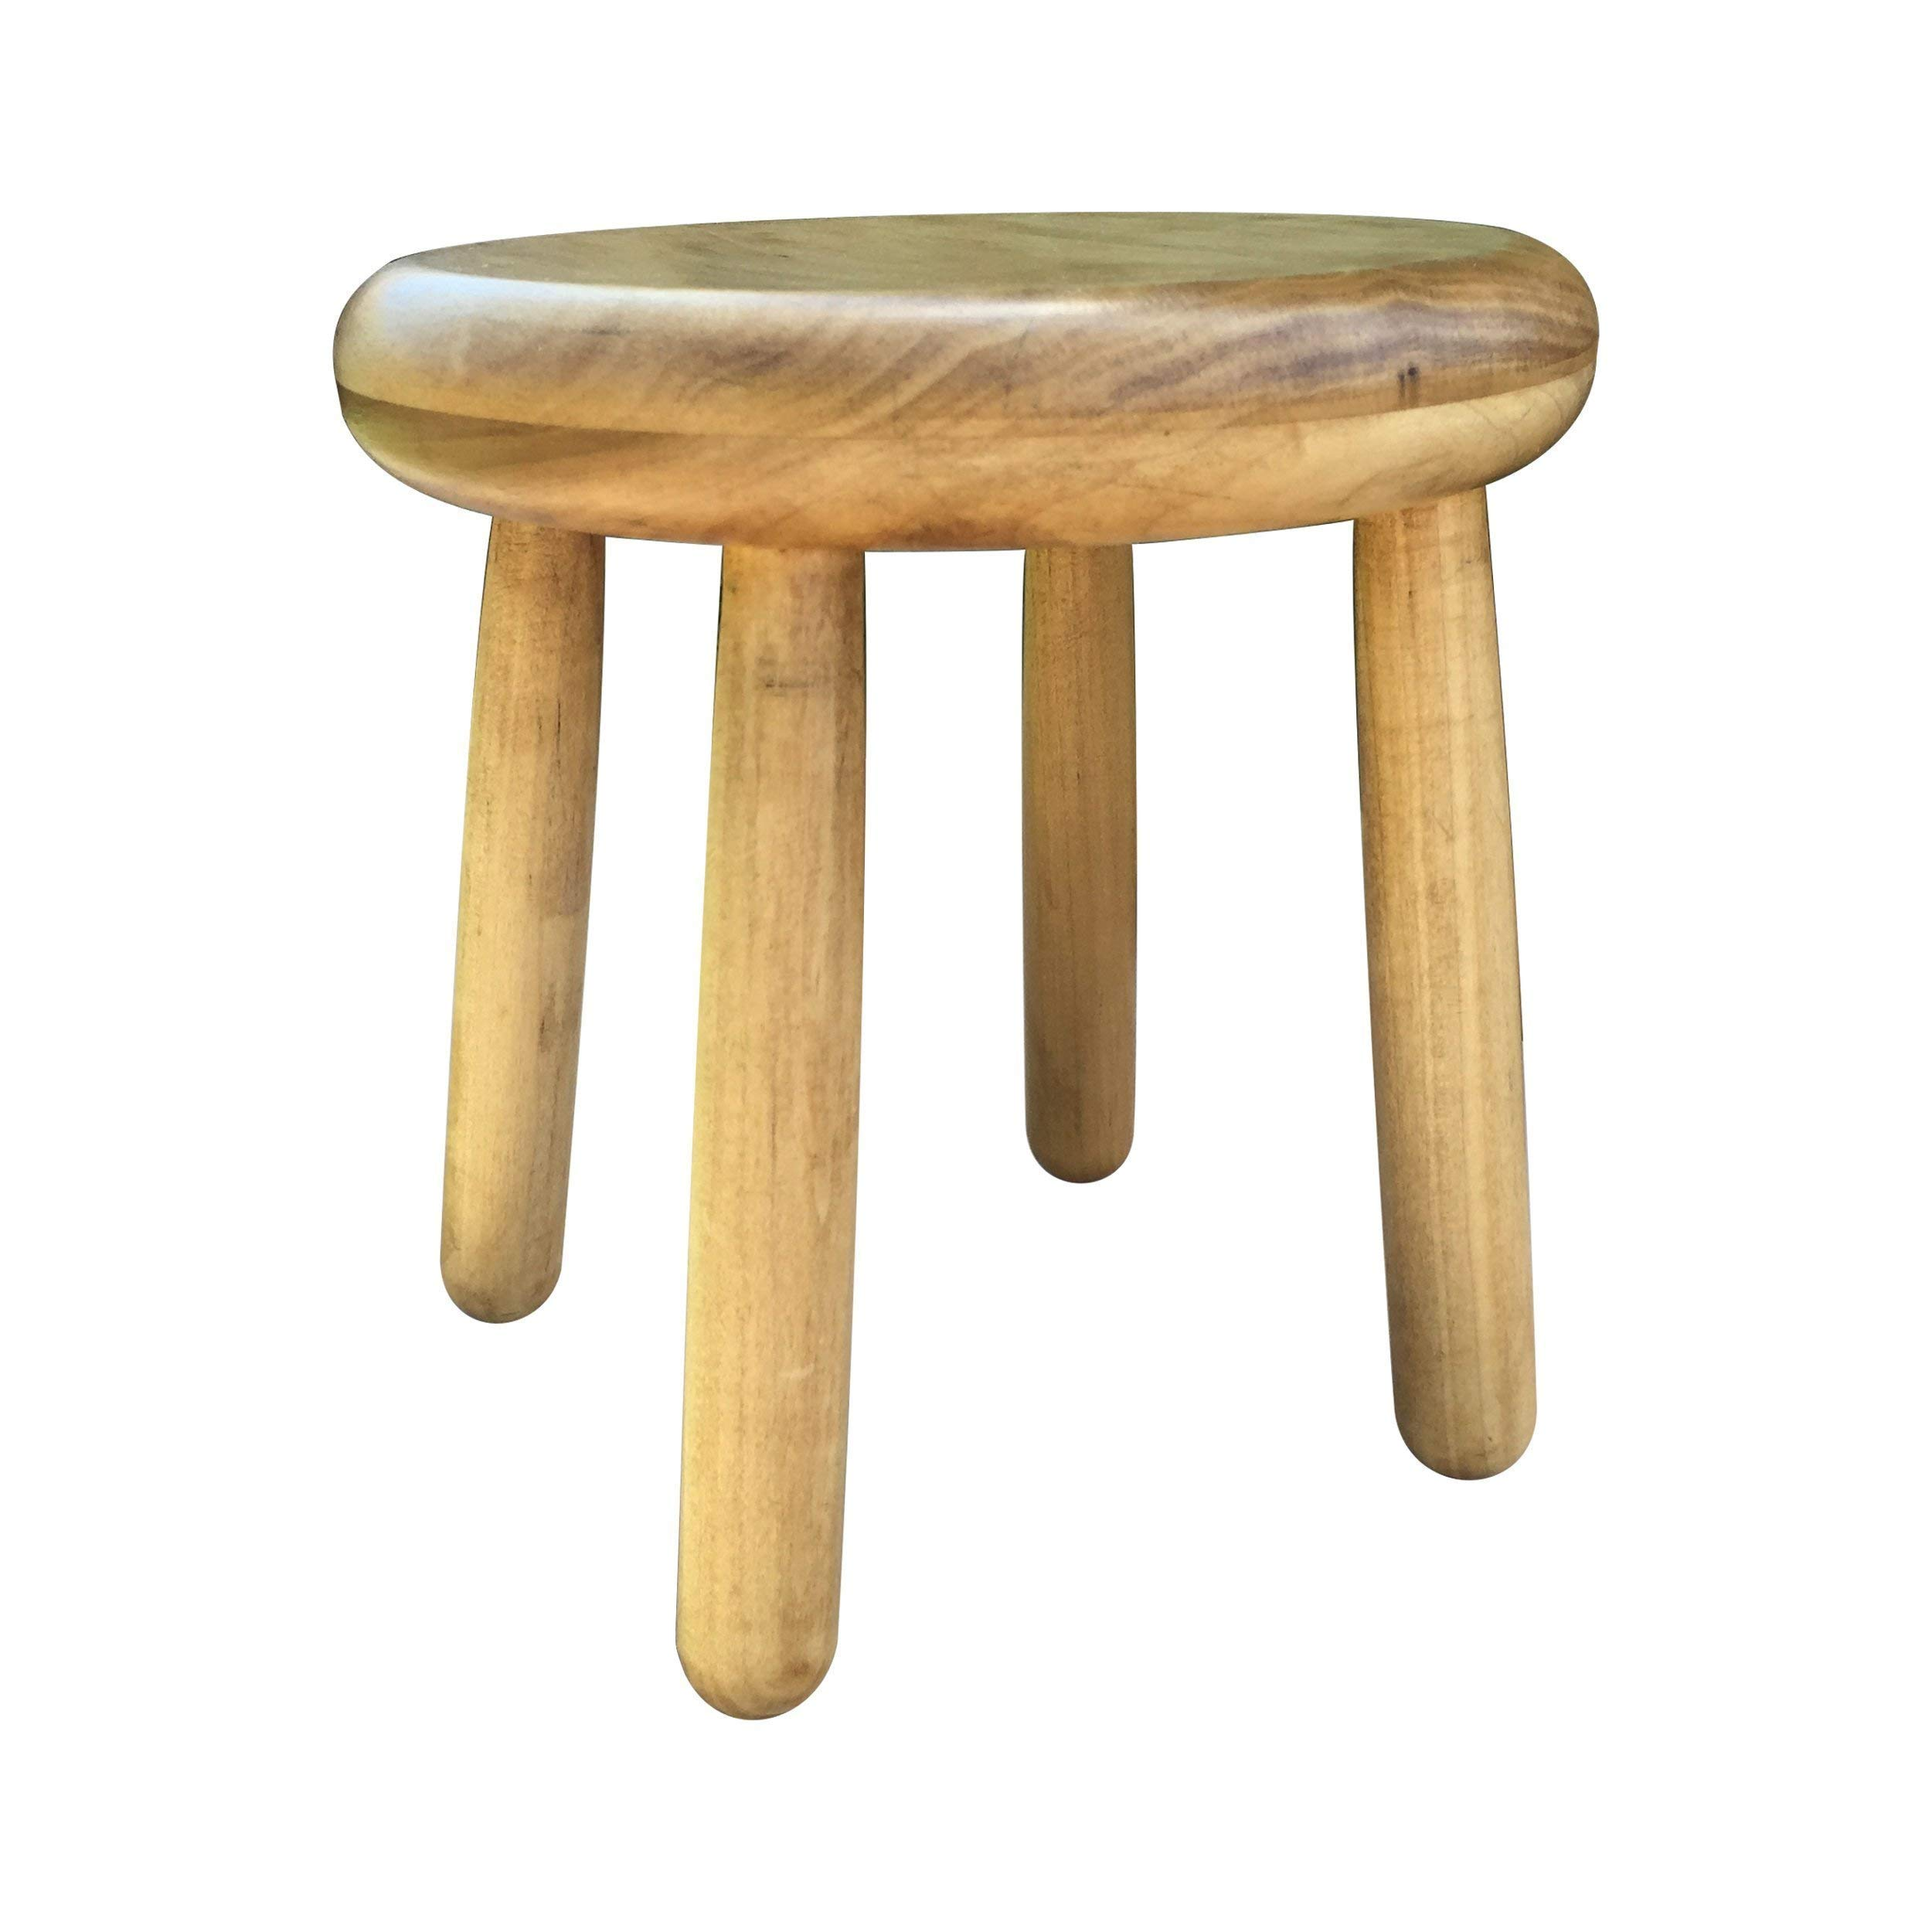 Modern Plant Stand Four Leg Stool by CW Furniture in Honey Wood Milk Milking Indoor Flower Pot Base Display Holder Solid Wooden Kids Chair Table Simple by Candlewood Furniture